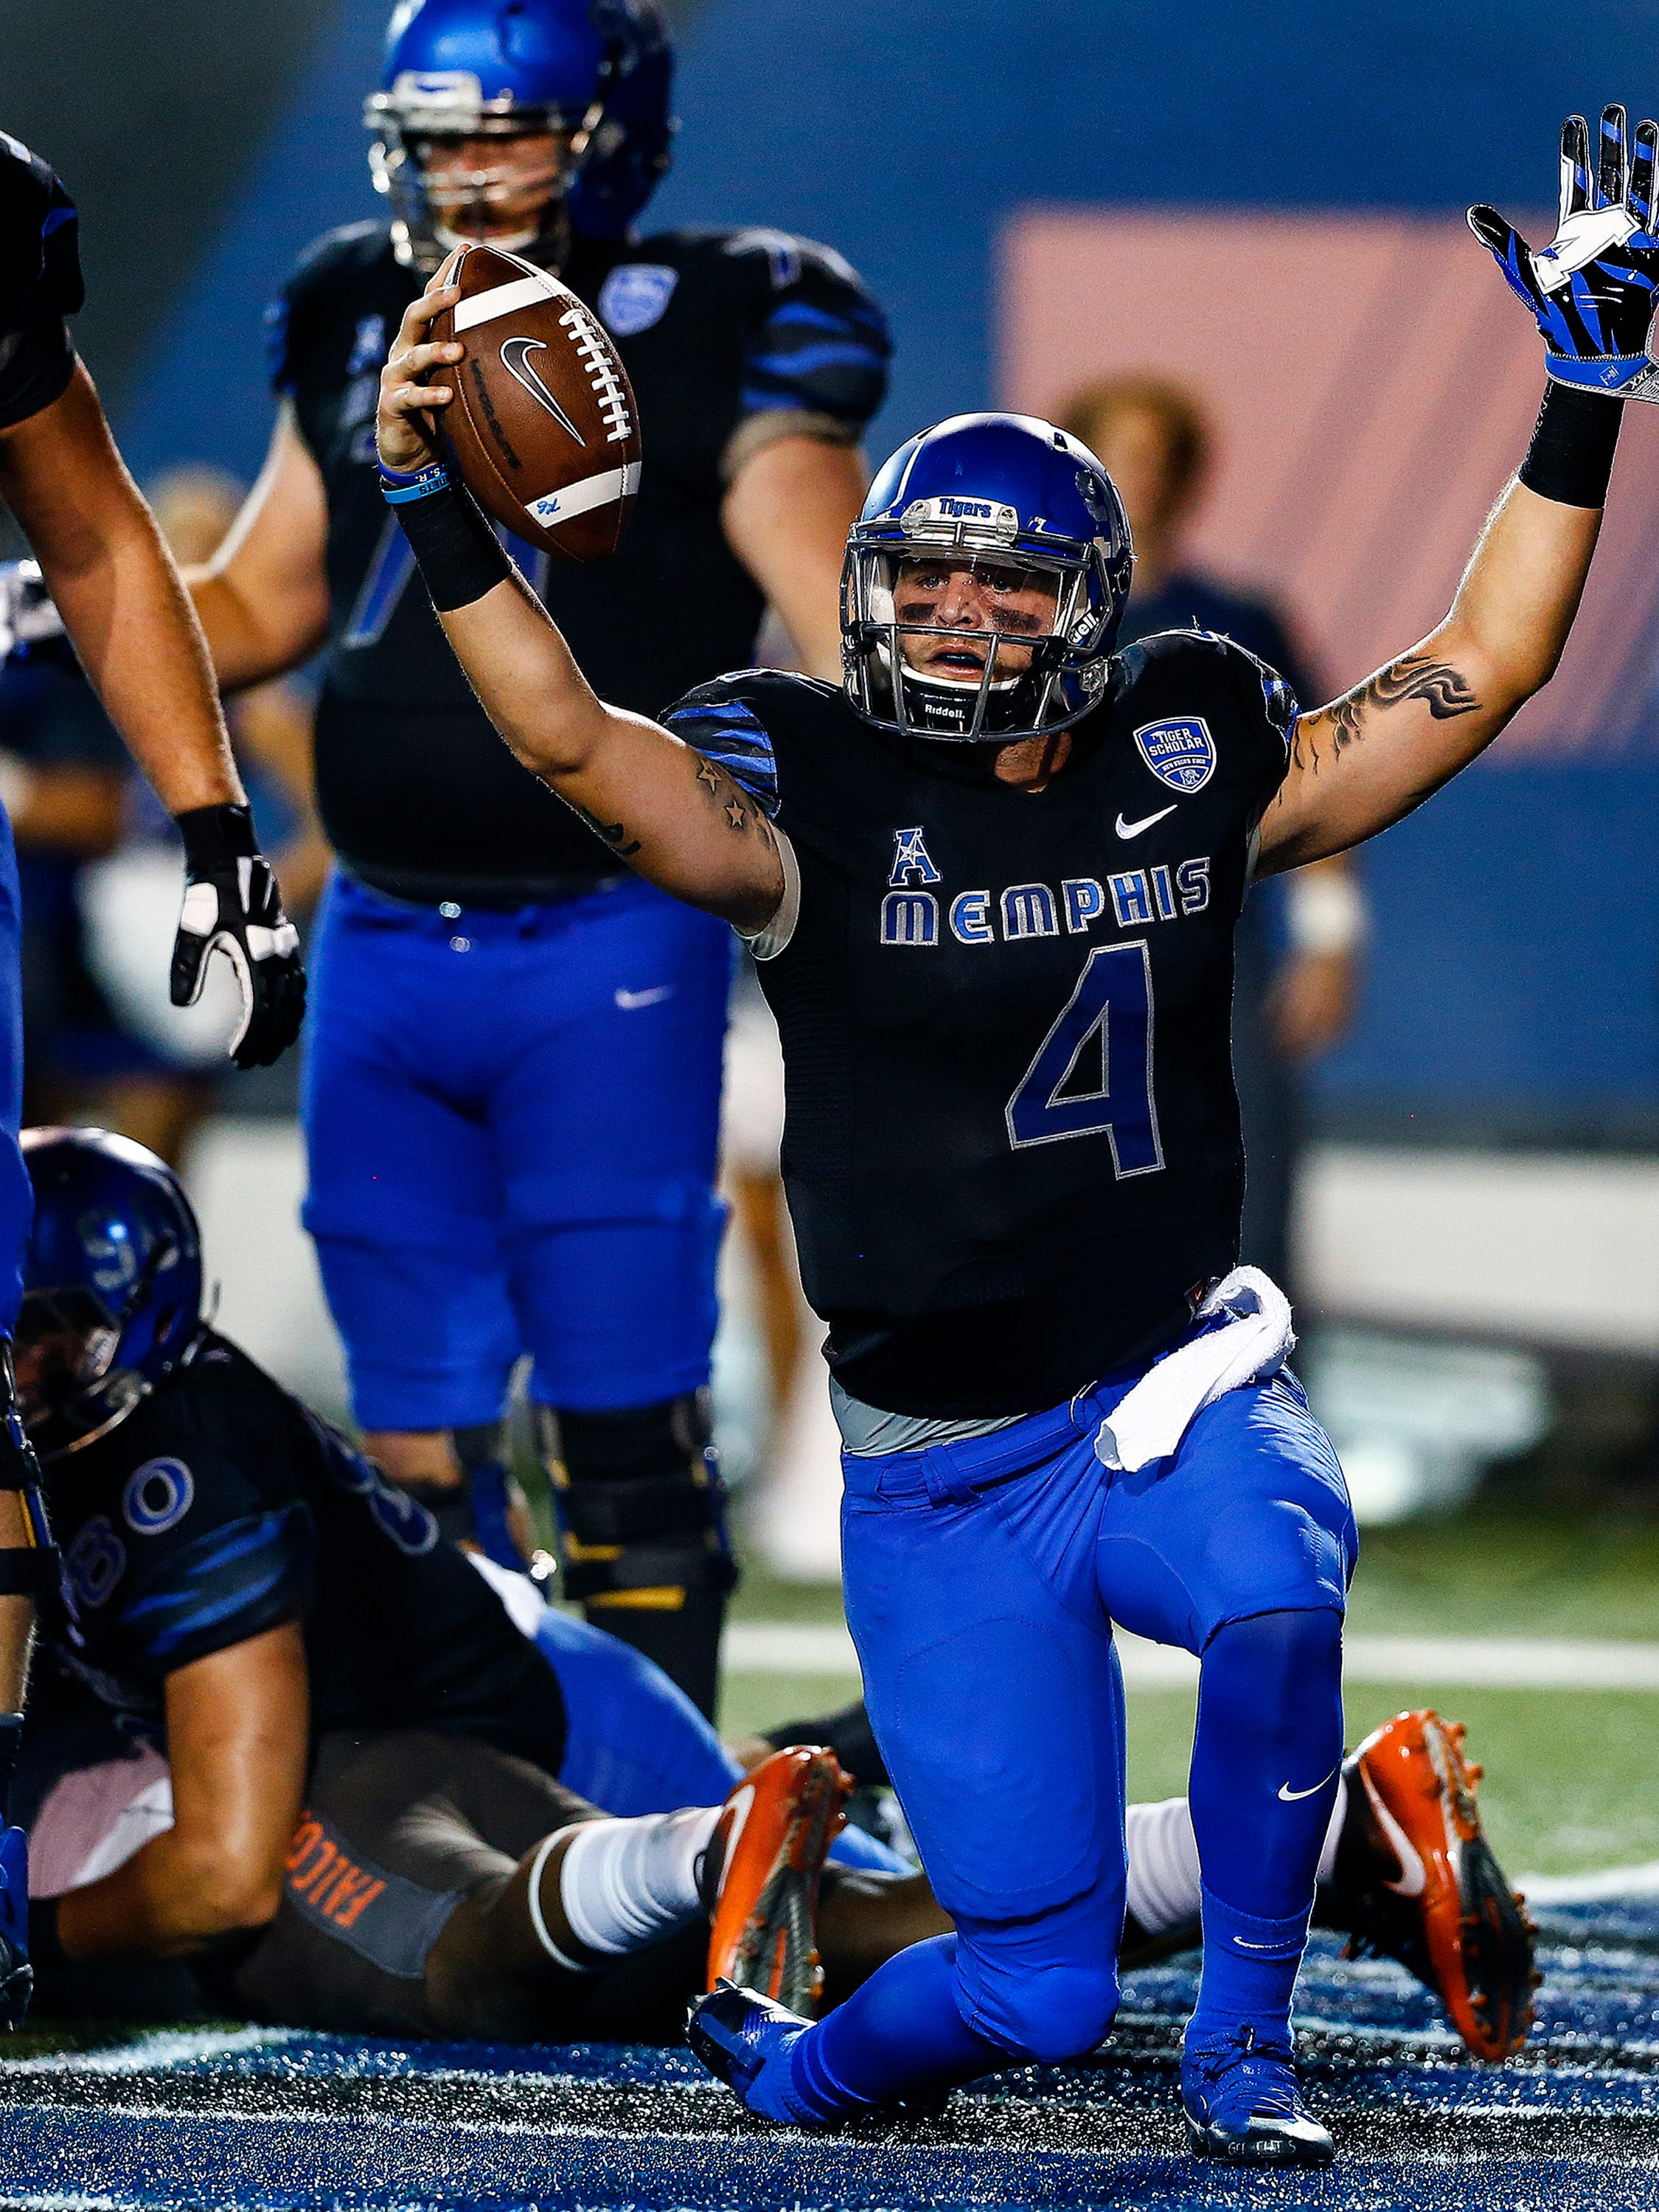 Memphis Football Tigers Are Top 10 Team In Making Fans Happy